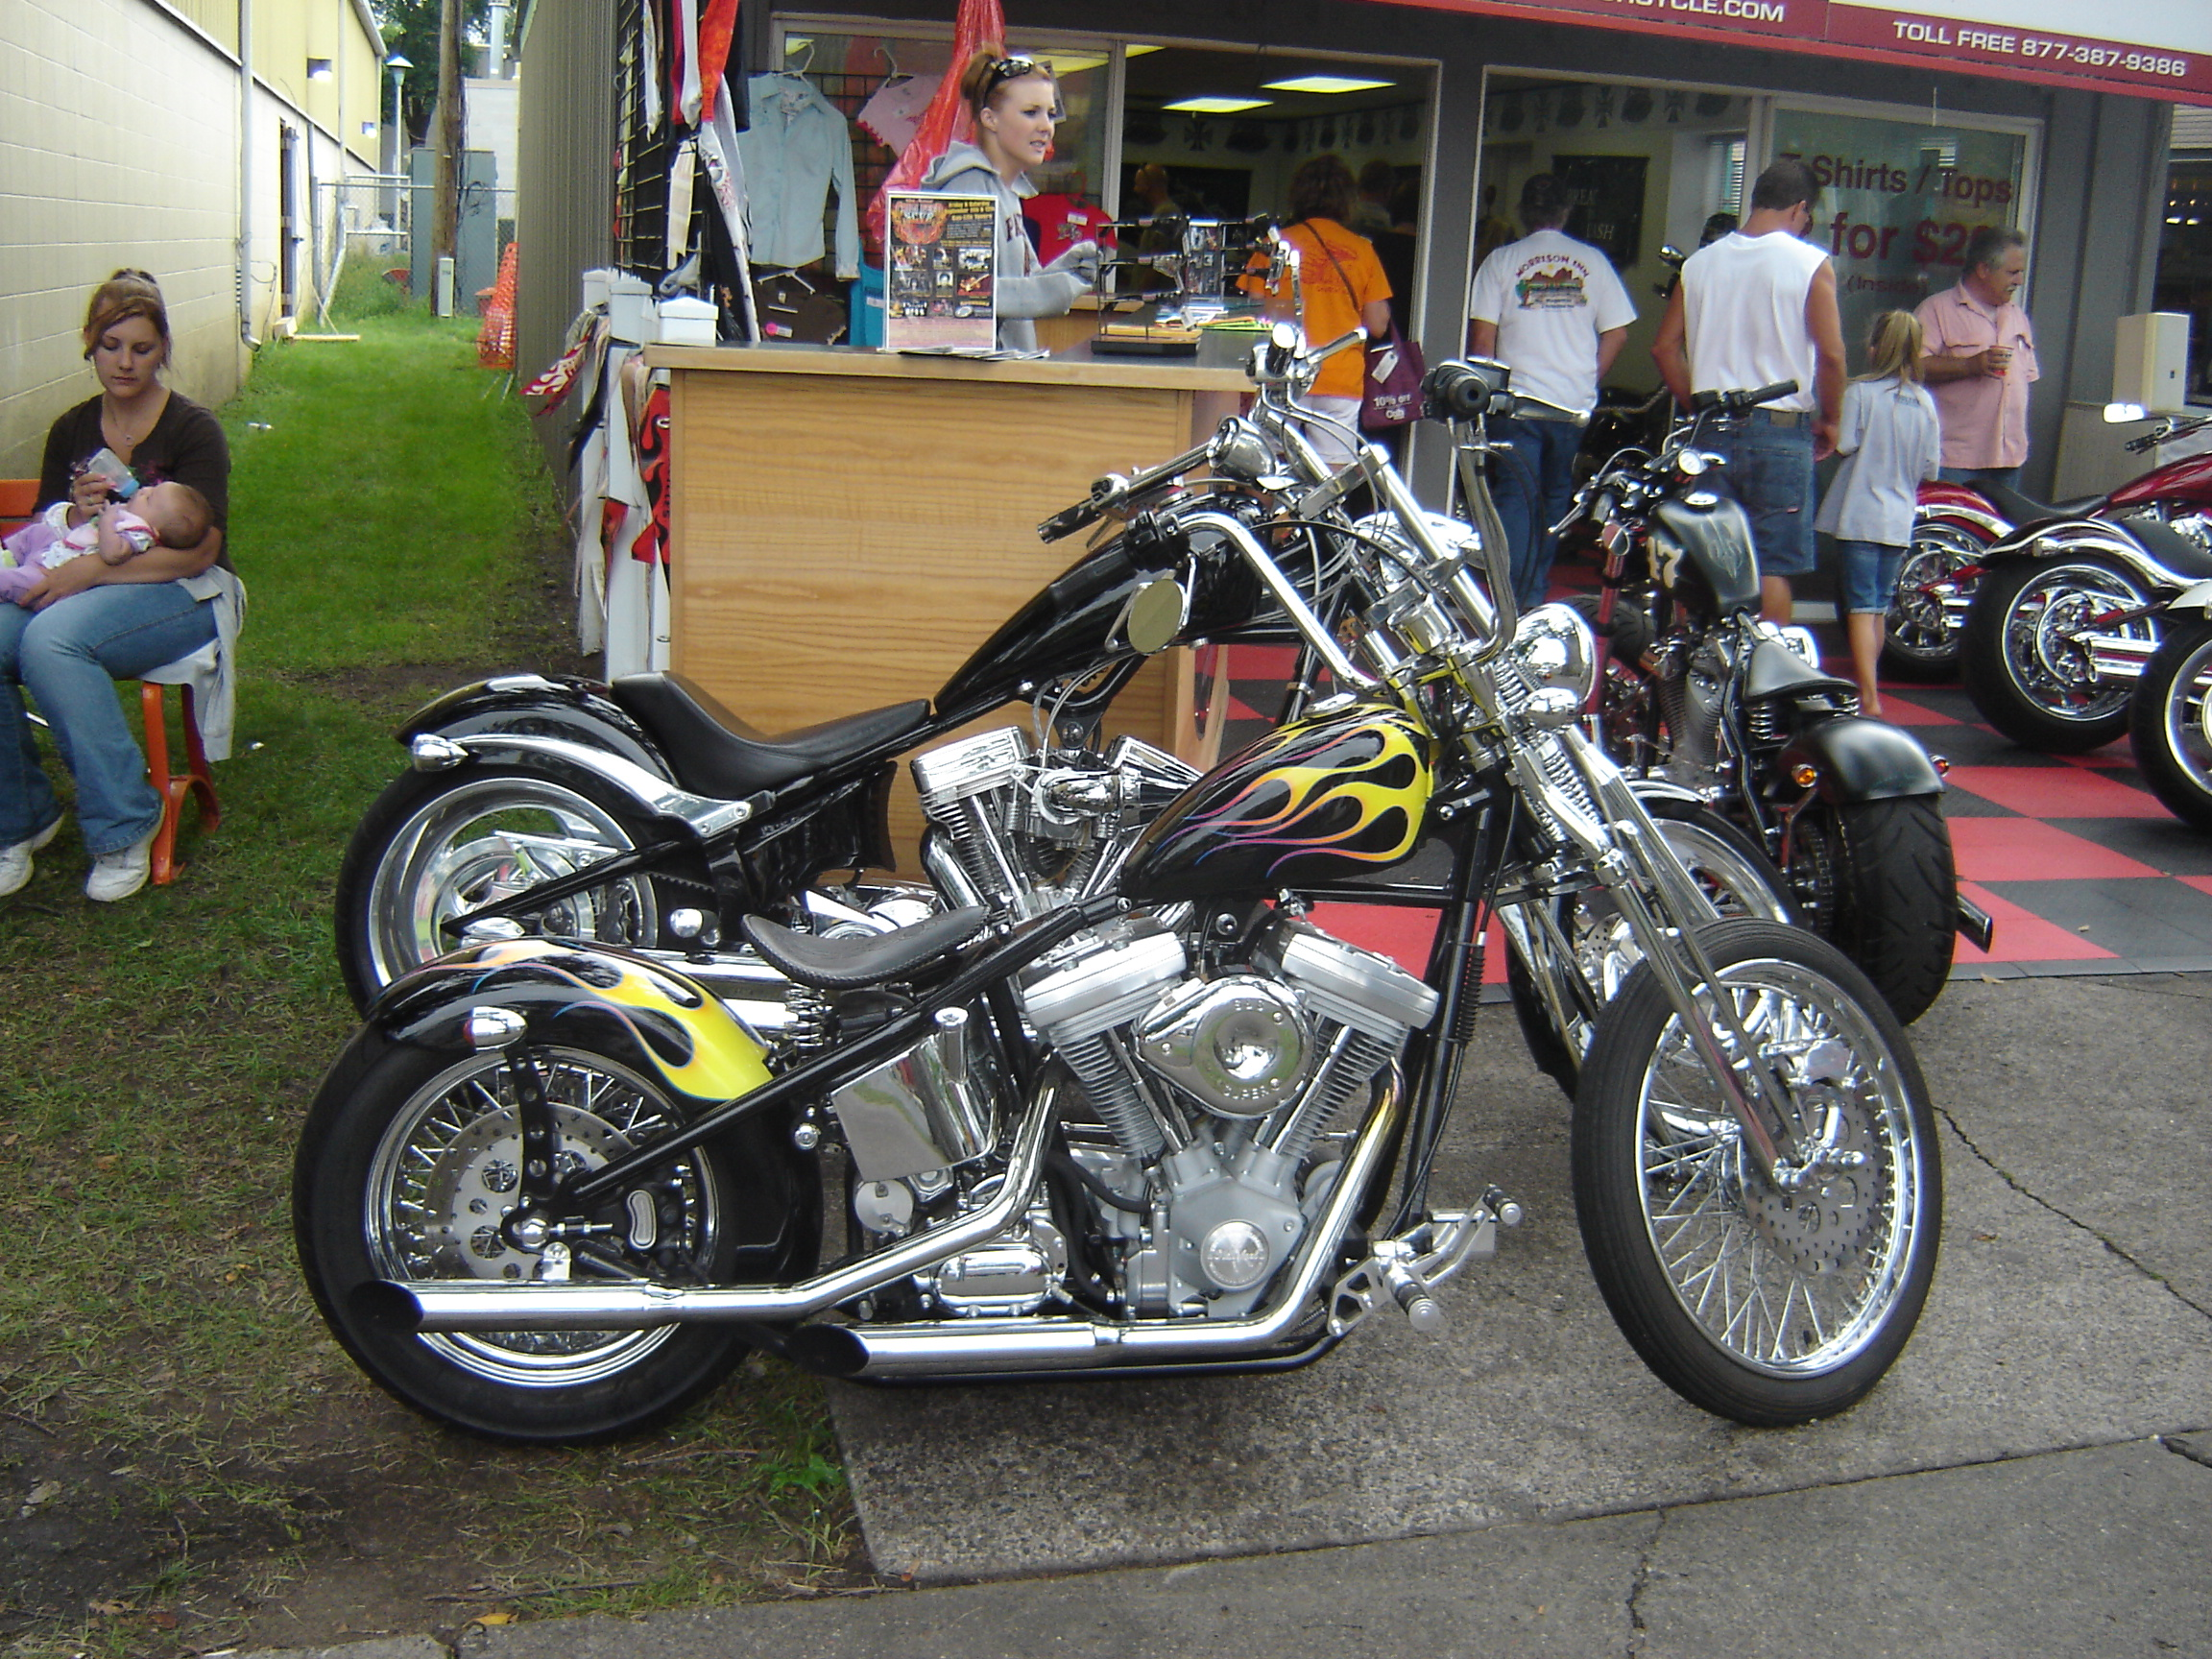 Old_School_Chopper_Motorcycle_by_ShockWaveX2.jpg (2304×1728)